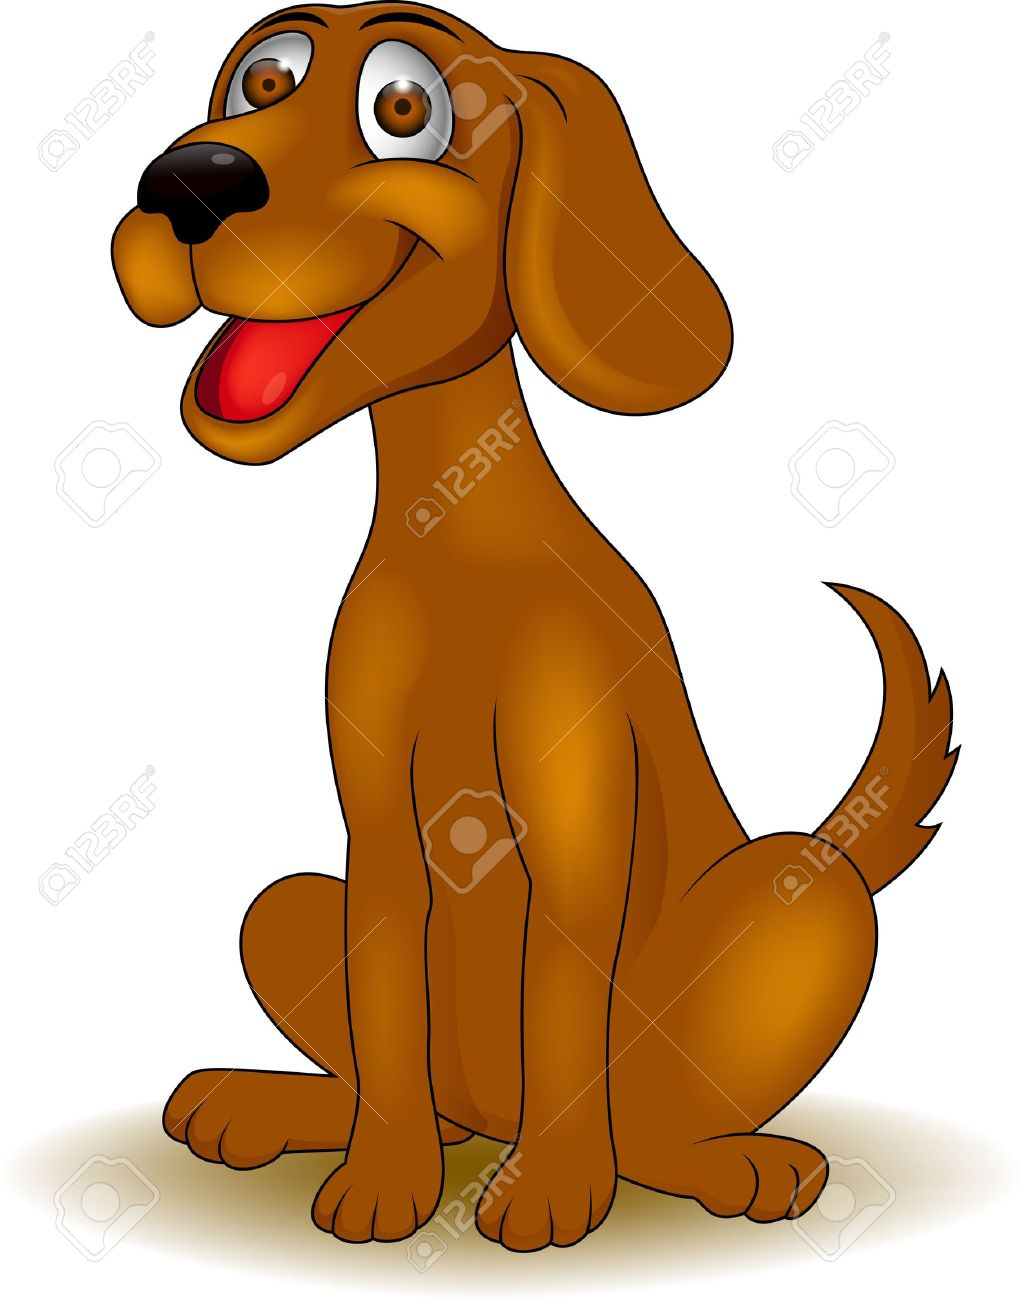 Happy Dog Cartoon Royalty Free Cliparts Vectors And Stock Illustration Image 15924891